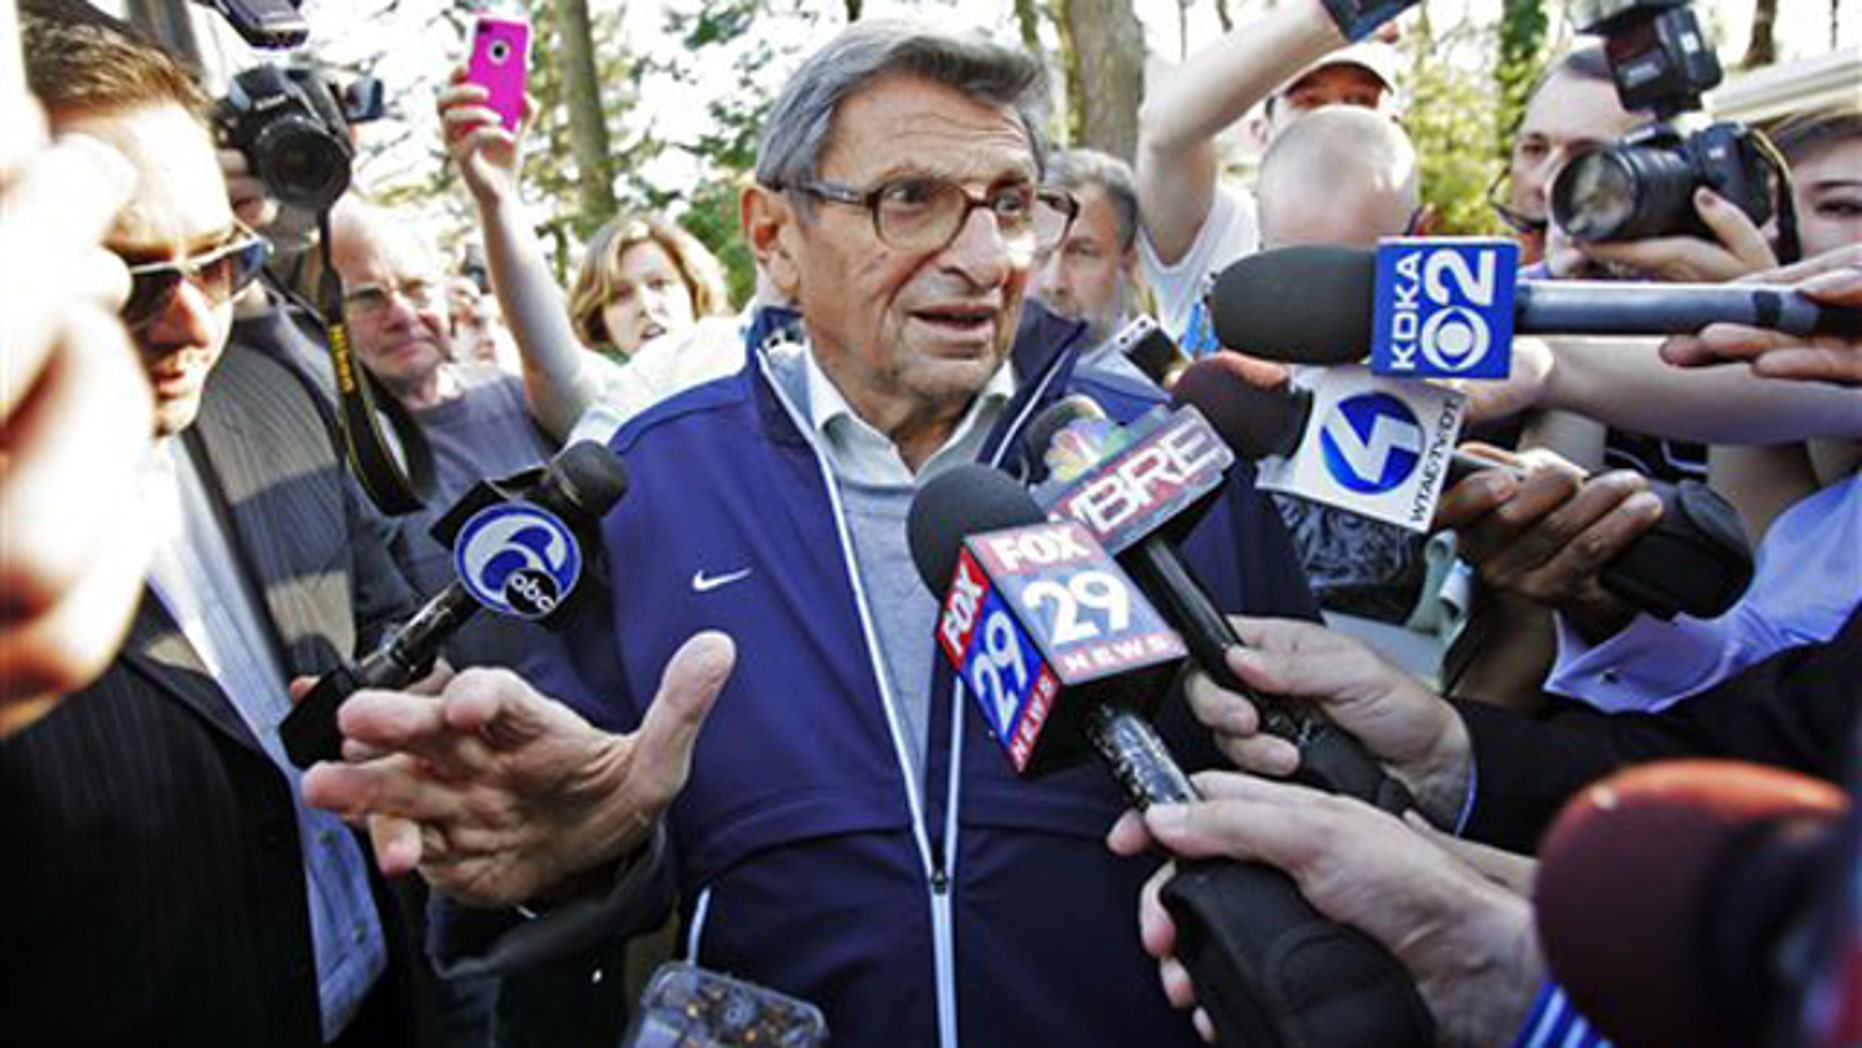 Nov. 8: Penn State football coach Joe Paterno speaks briefly to reporters as he leaves for football practice in State College, Pa. Paterno was later fired by the university board of trustees for not doing more to report allegations of child sex abuse by his former defensive coordinator Jerry Sandusky, who retired in 1999.